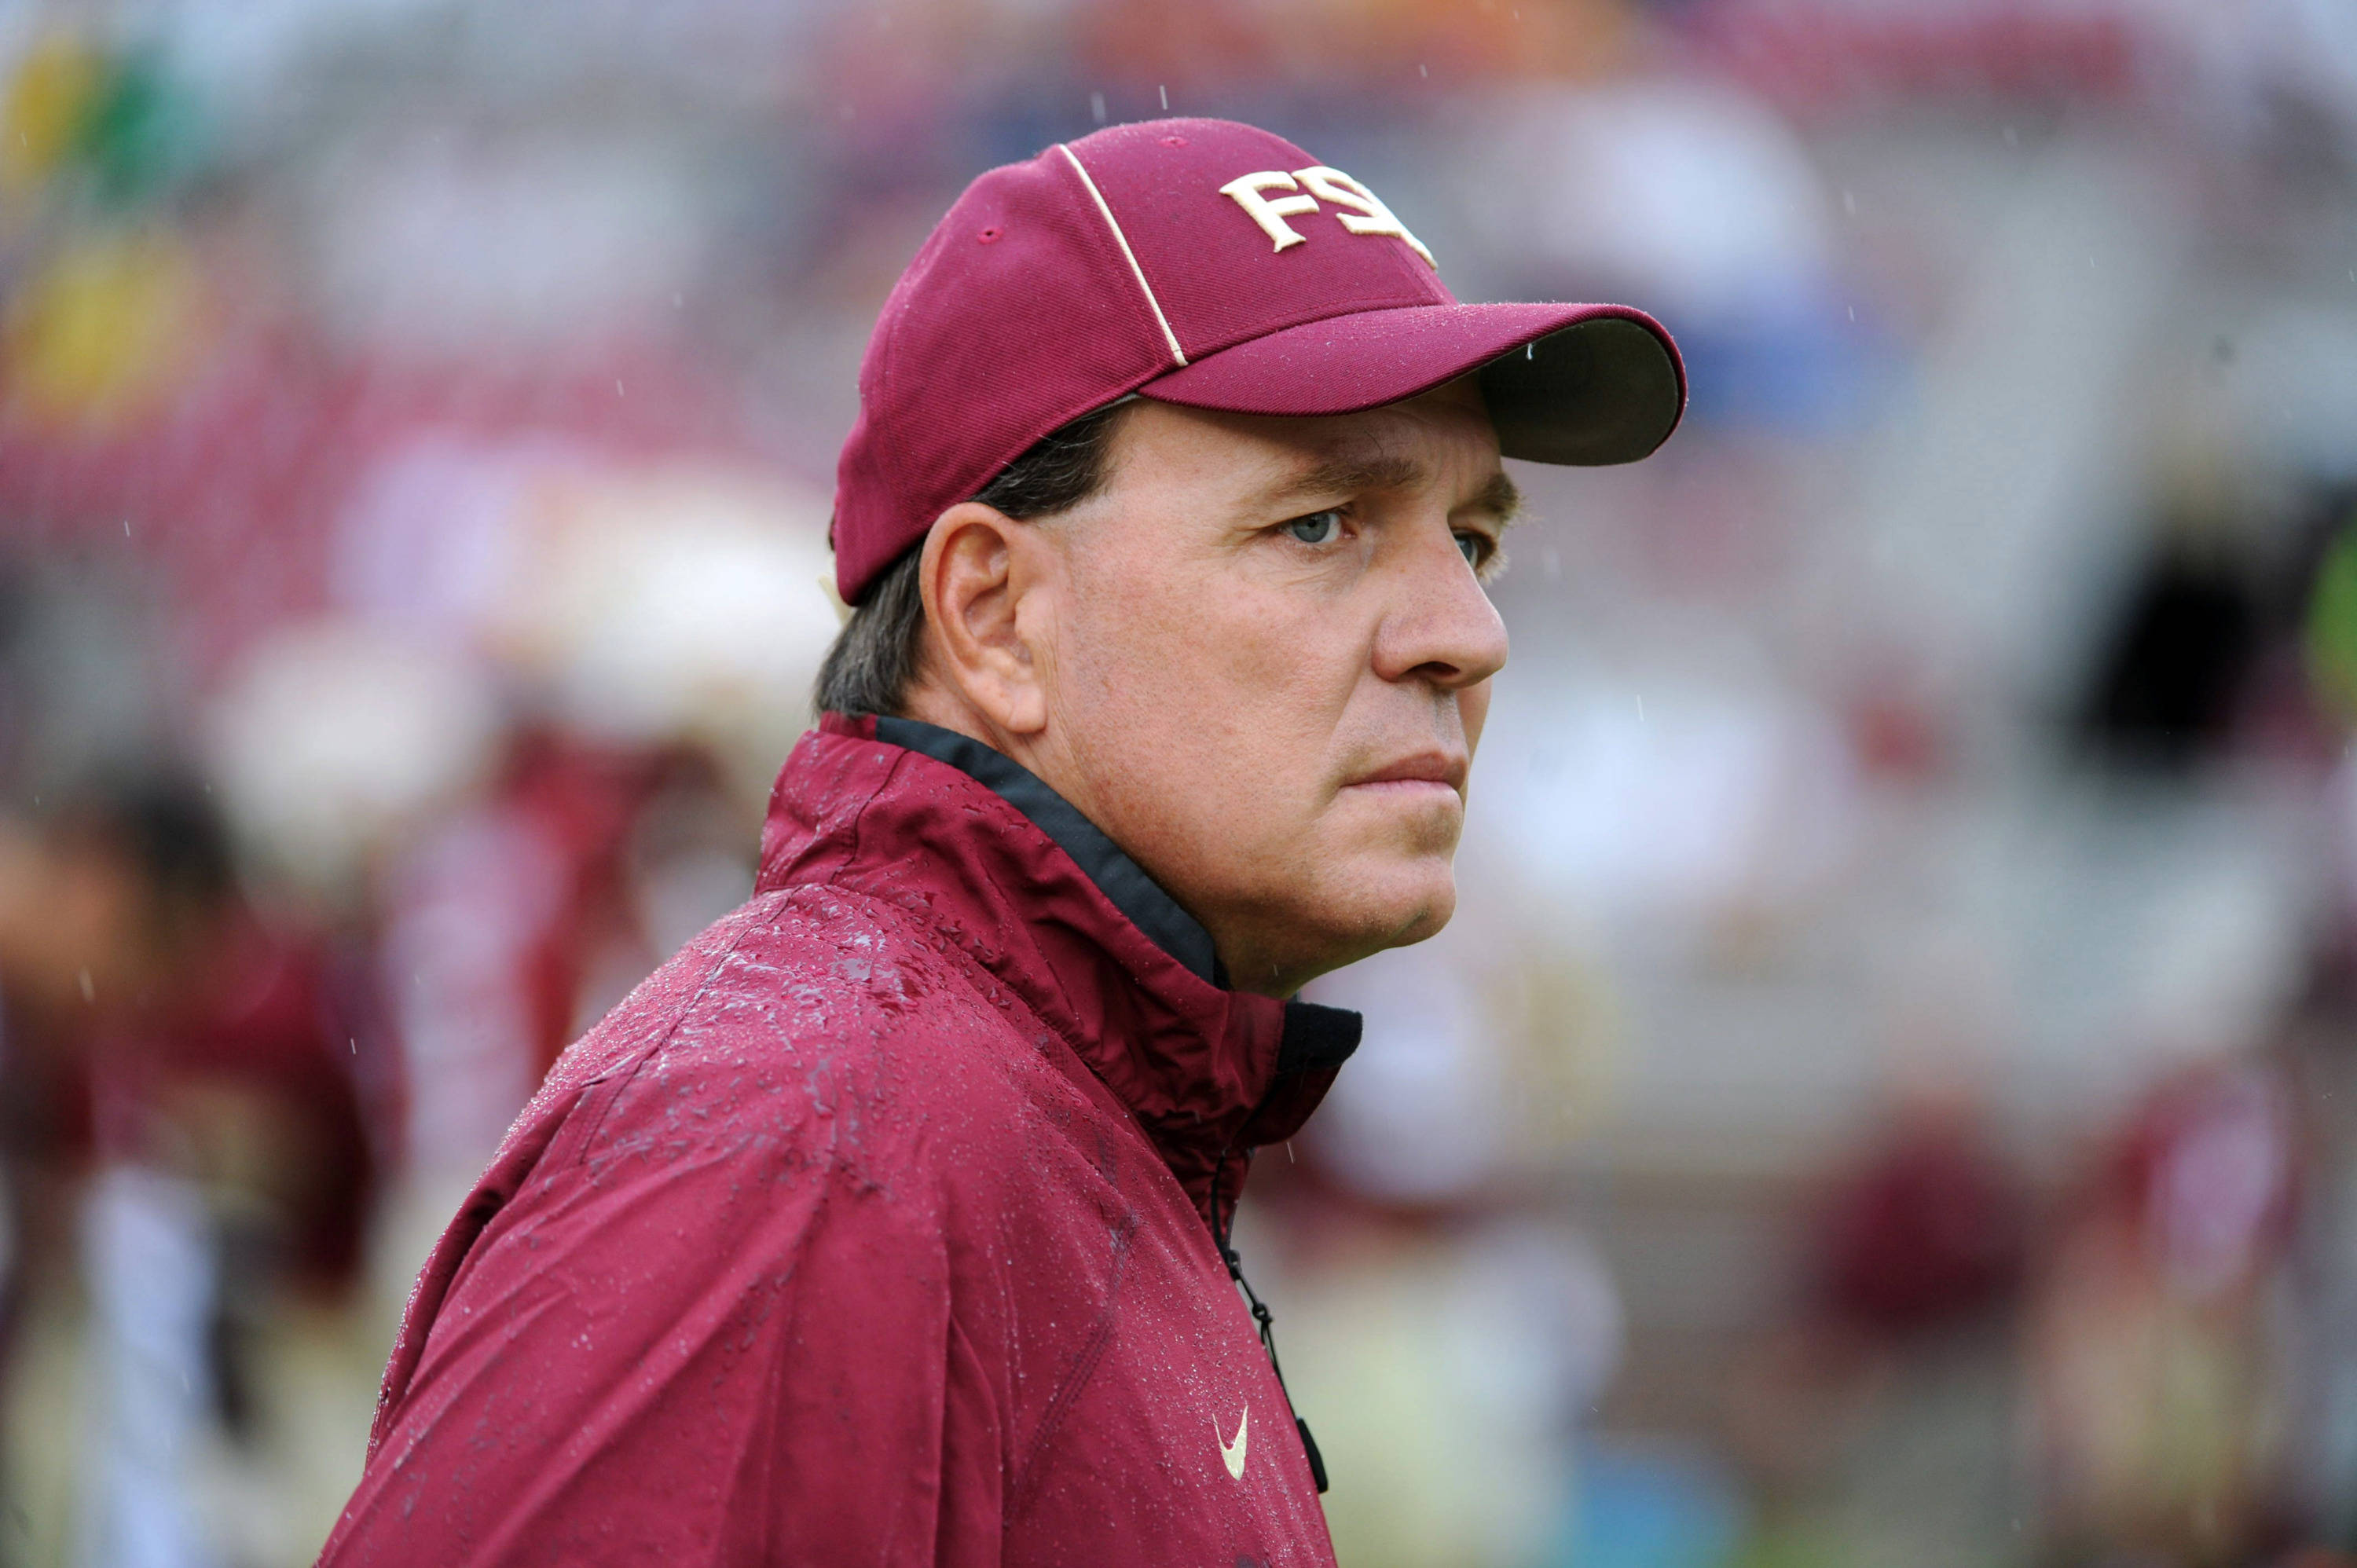 Florida State Seminoles head coach Jimbo Fisher before the start of the game against the Bethune-Cookman Wildcats. (Melina Vastola-USA TODAY Sports)